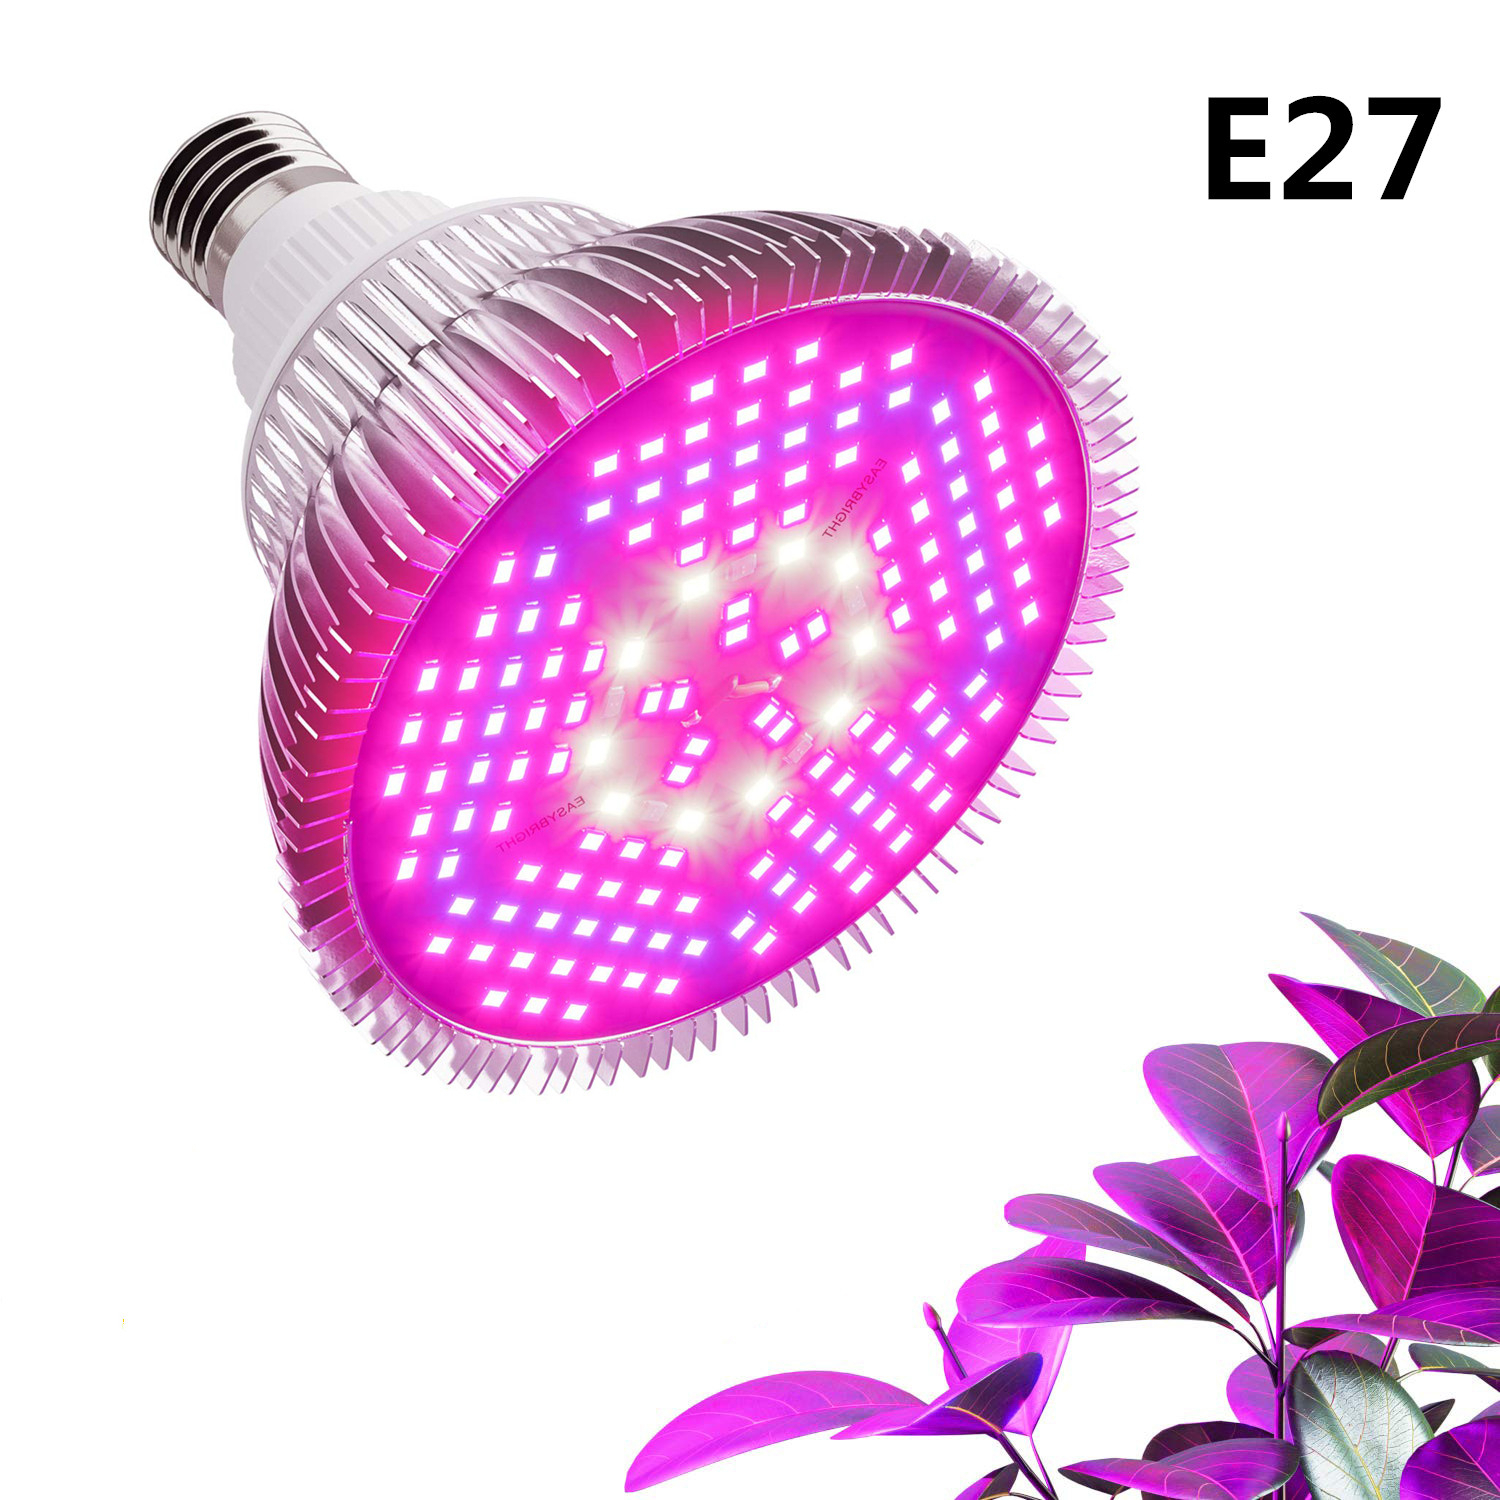 LED Phyto Lamp Full Spectrum 10W 30W 50W 80W 100W E27 Grow Lights Bulbs For Plants Flowers Seeds Garden Vegetables Greenhouse